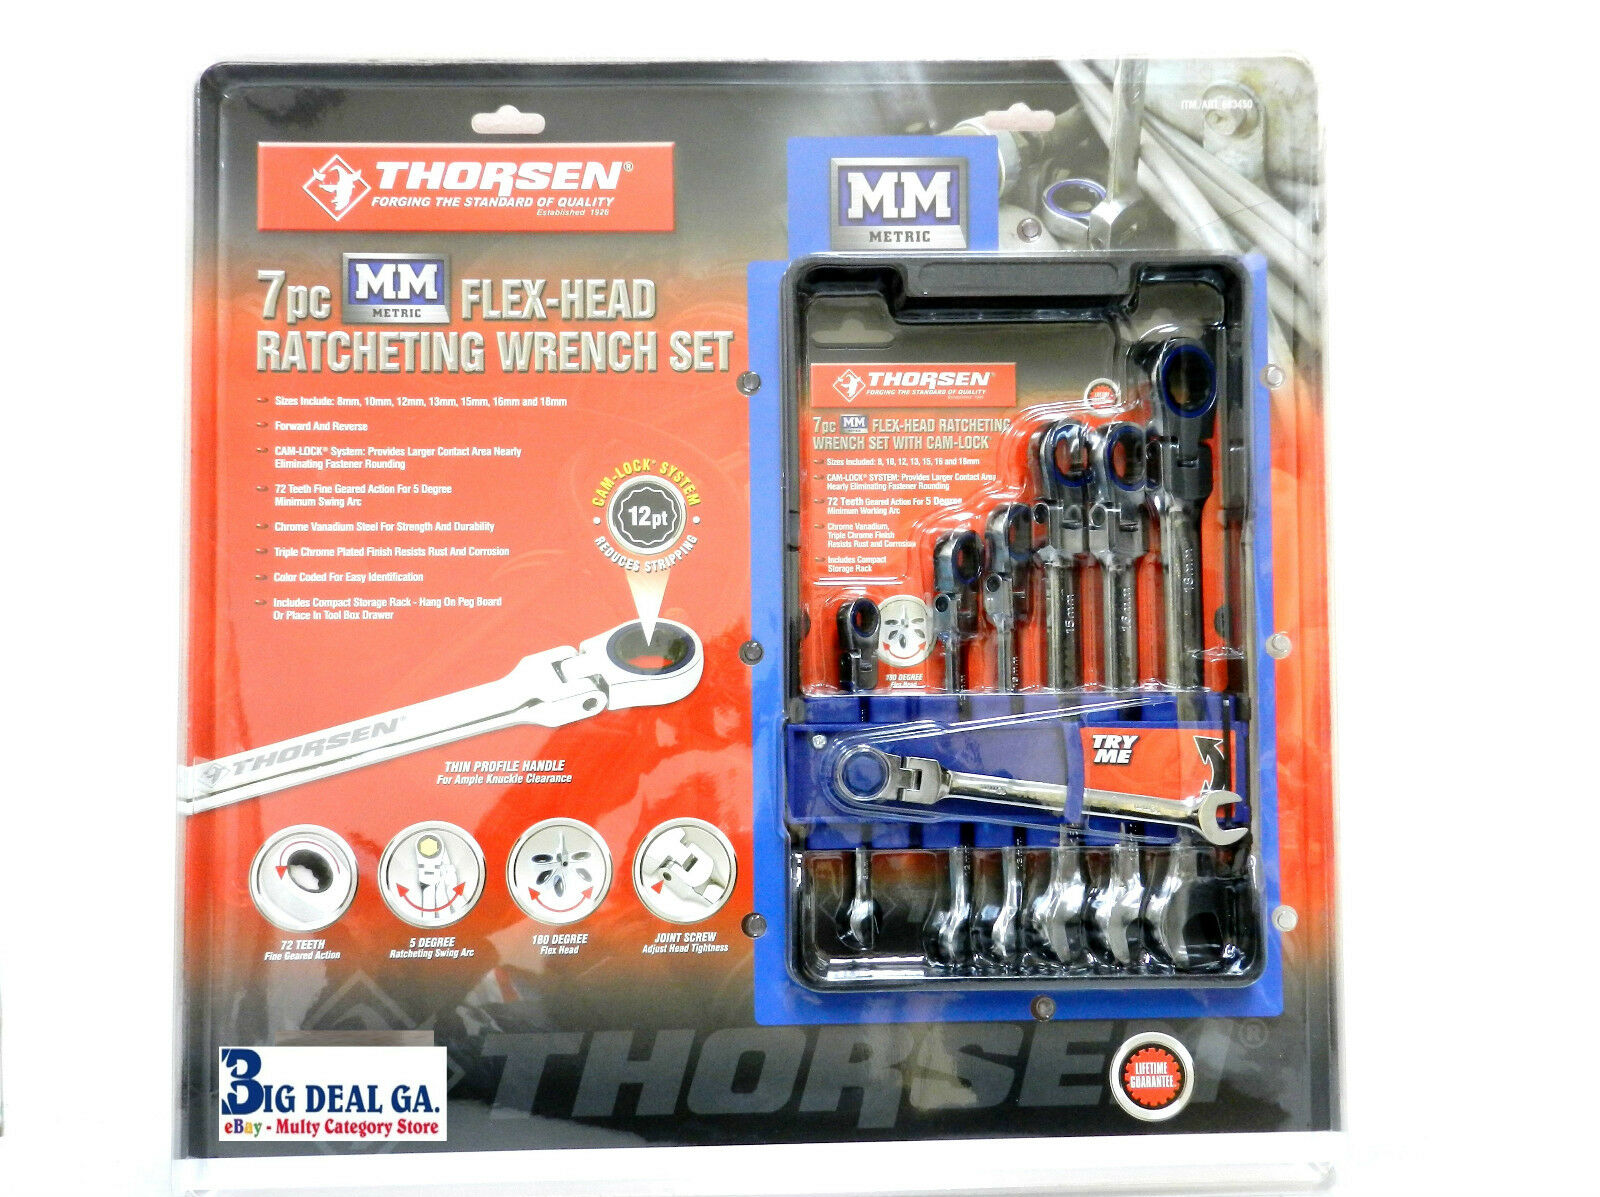 Thorsen 7 pc bluee And Chrome MM Metric Flex-Head Ratcheting Wrench Set New